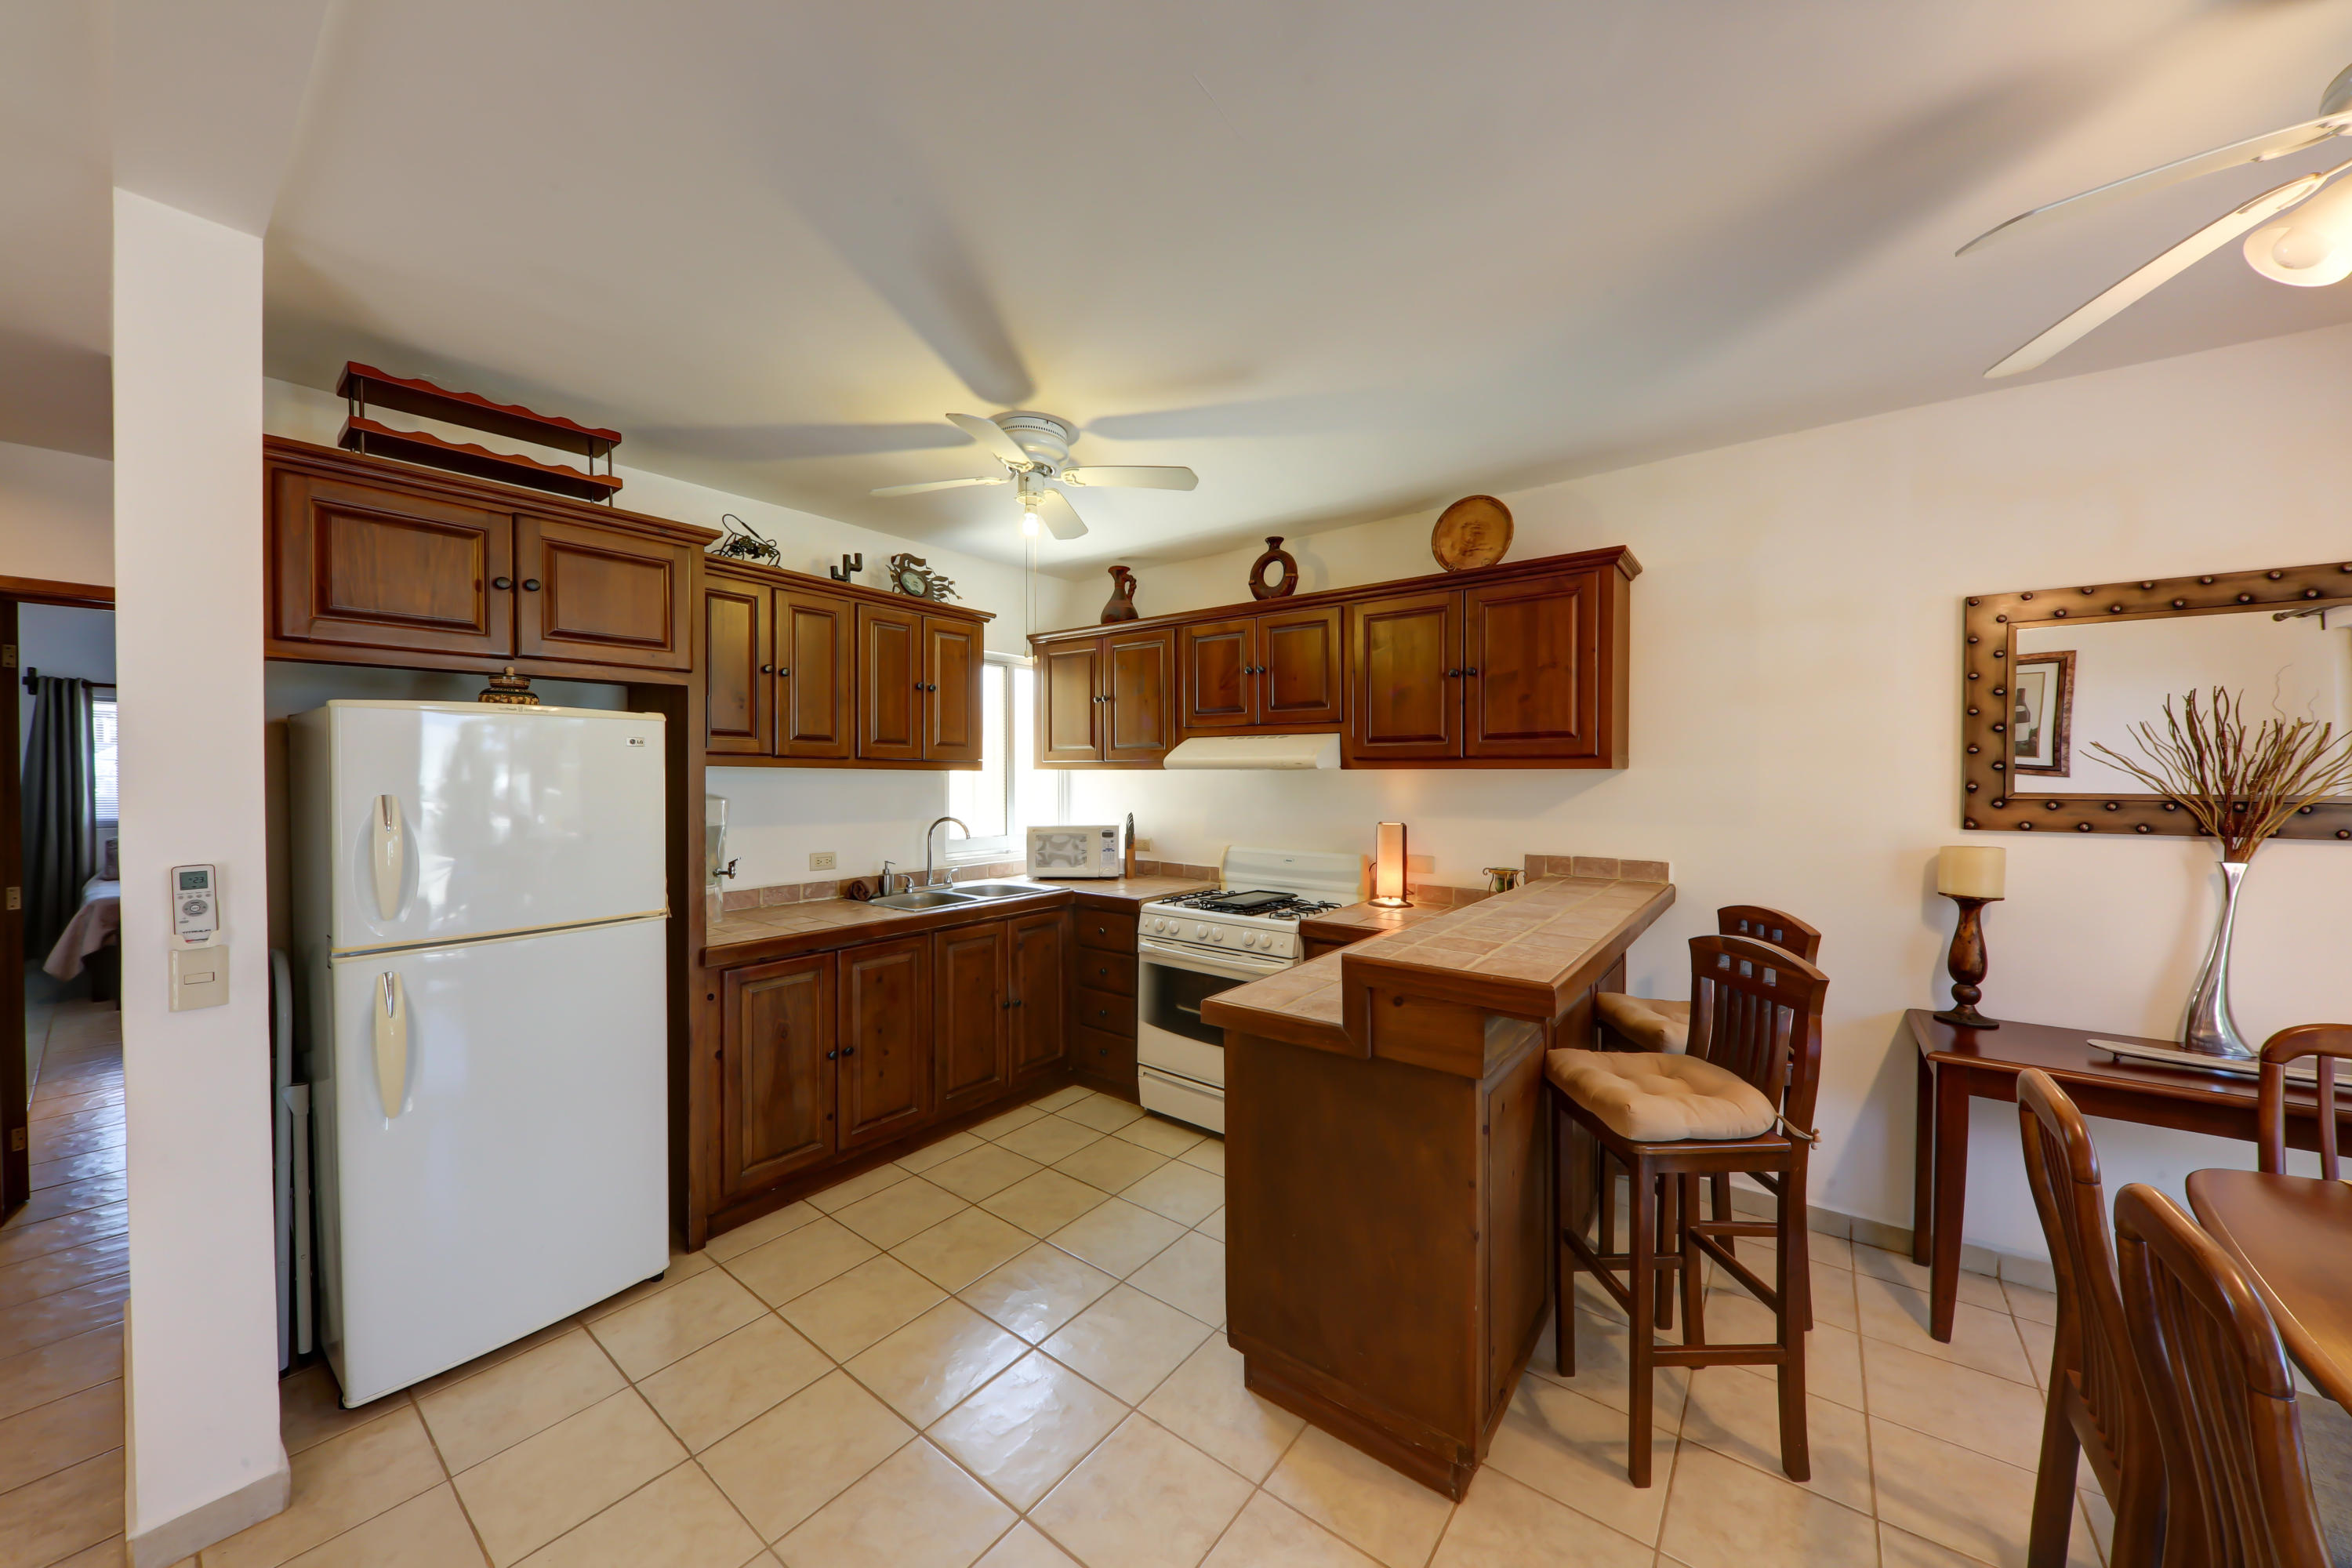 Single Level 2 Bedroom Home-6